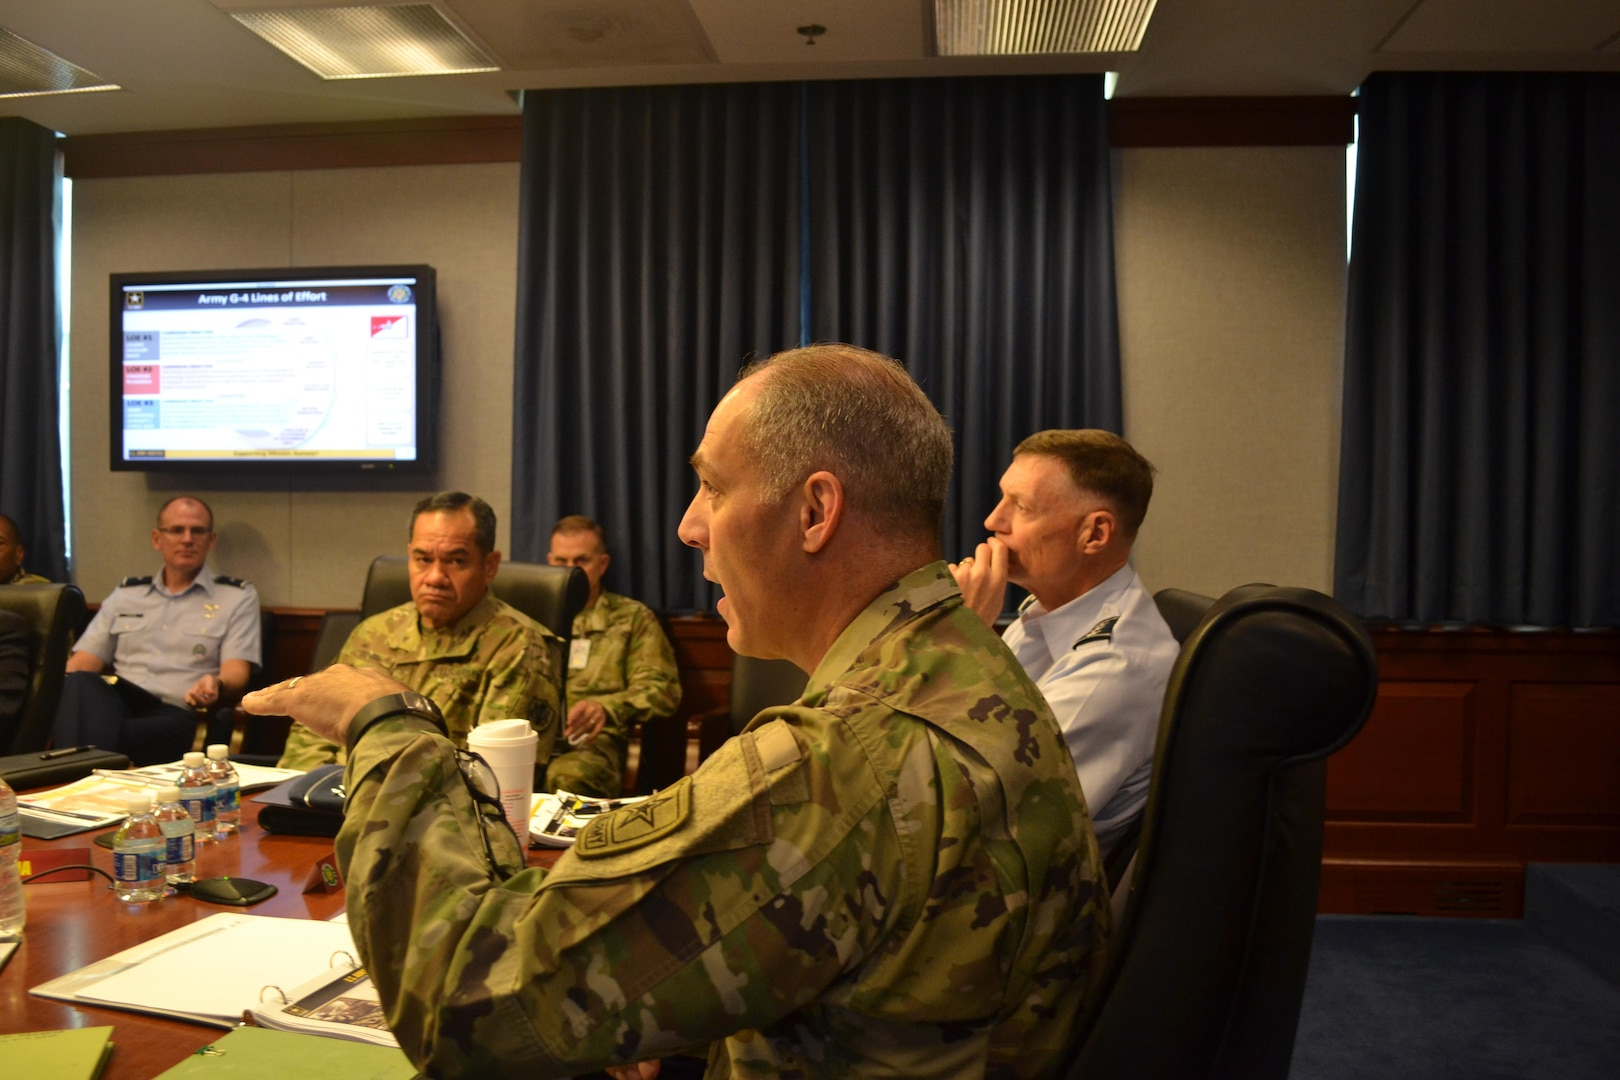 Army Lt. Gen. Gustave Perna (foreground) speaks at Army/DLA Day, Sept. 8 at the Pentagon, as (from far left) Air Force Brig. Gen. Martin Chapin, commander of DLA Energy, Army Command Sgt. Maj. Charles Tobin and Air Force Lt. Gen. Andy Busch listen.